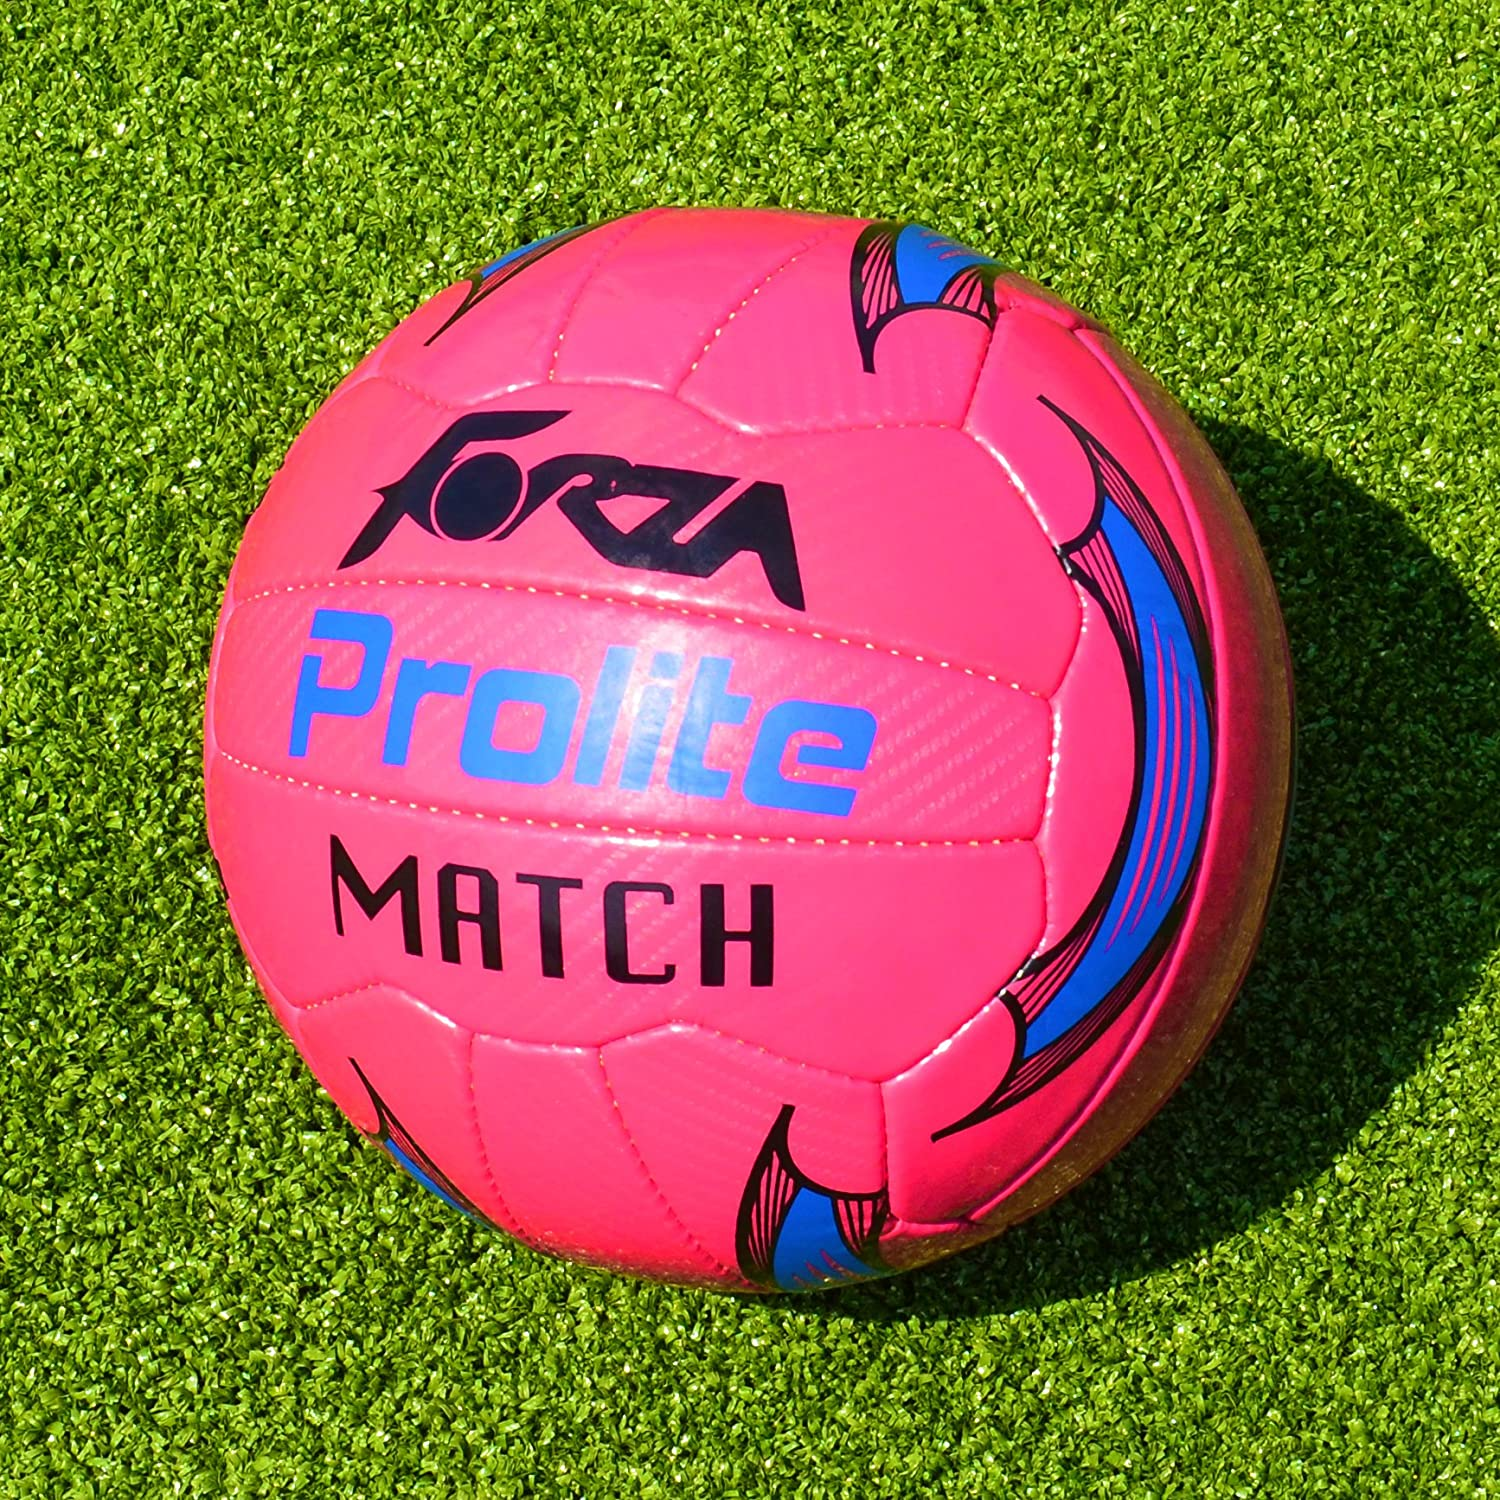 Forza Prolite Match Soccer Ball – Highly Visible明るいピンクサッカーボールIdeal for Matches Played on the Greyestの日。[ Net世界スポーツ] B01N91WN3A Pack of 3